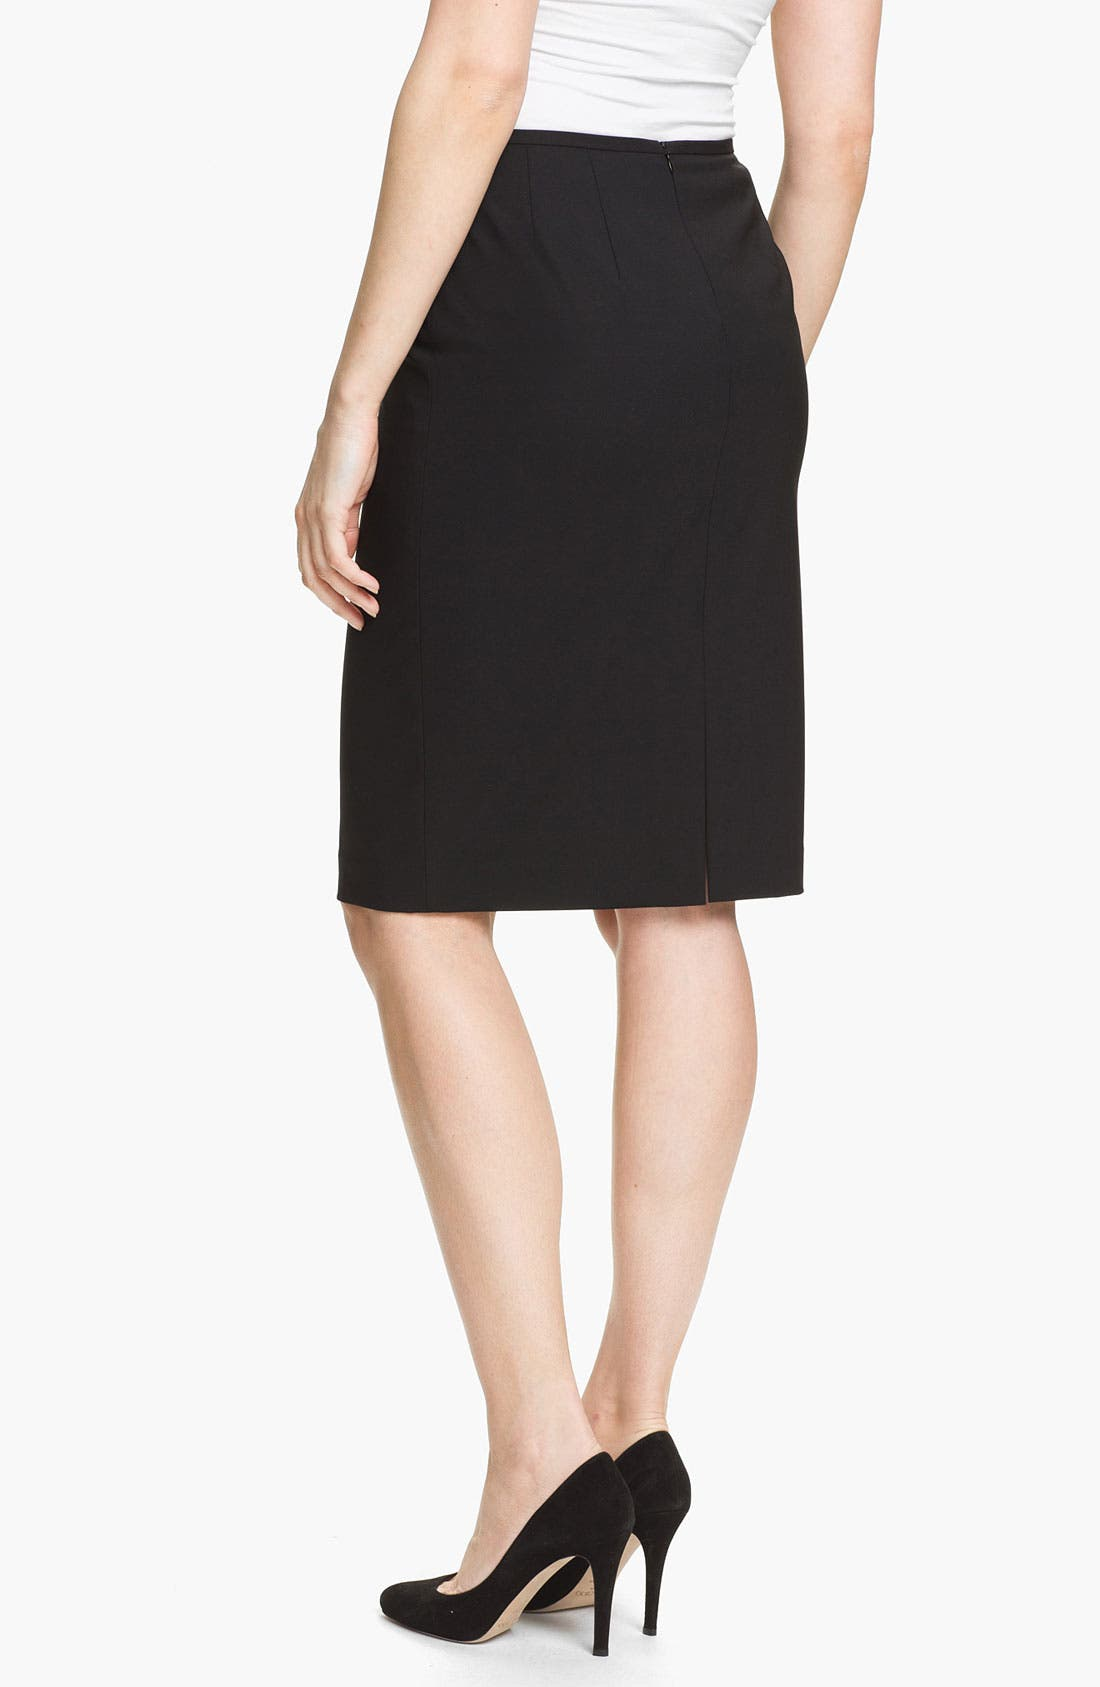 Alternate Image 1 Selected - Lafayette 148 New York 'Maxine' Skirt